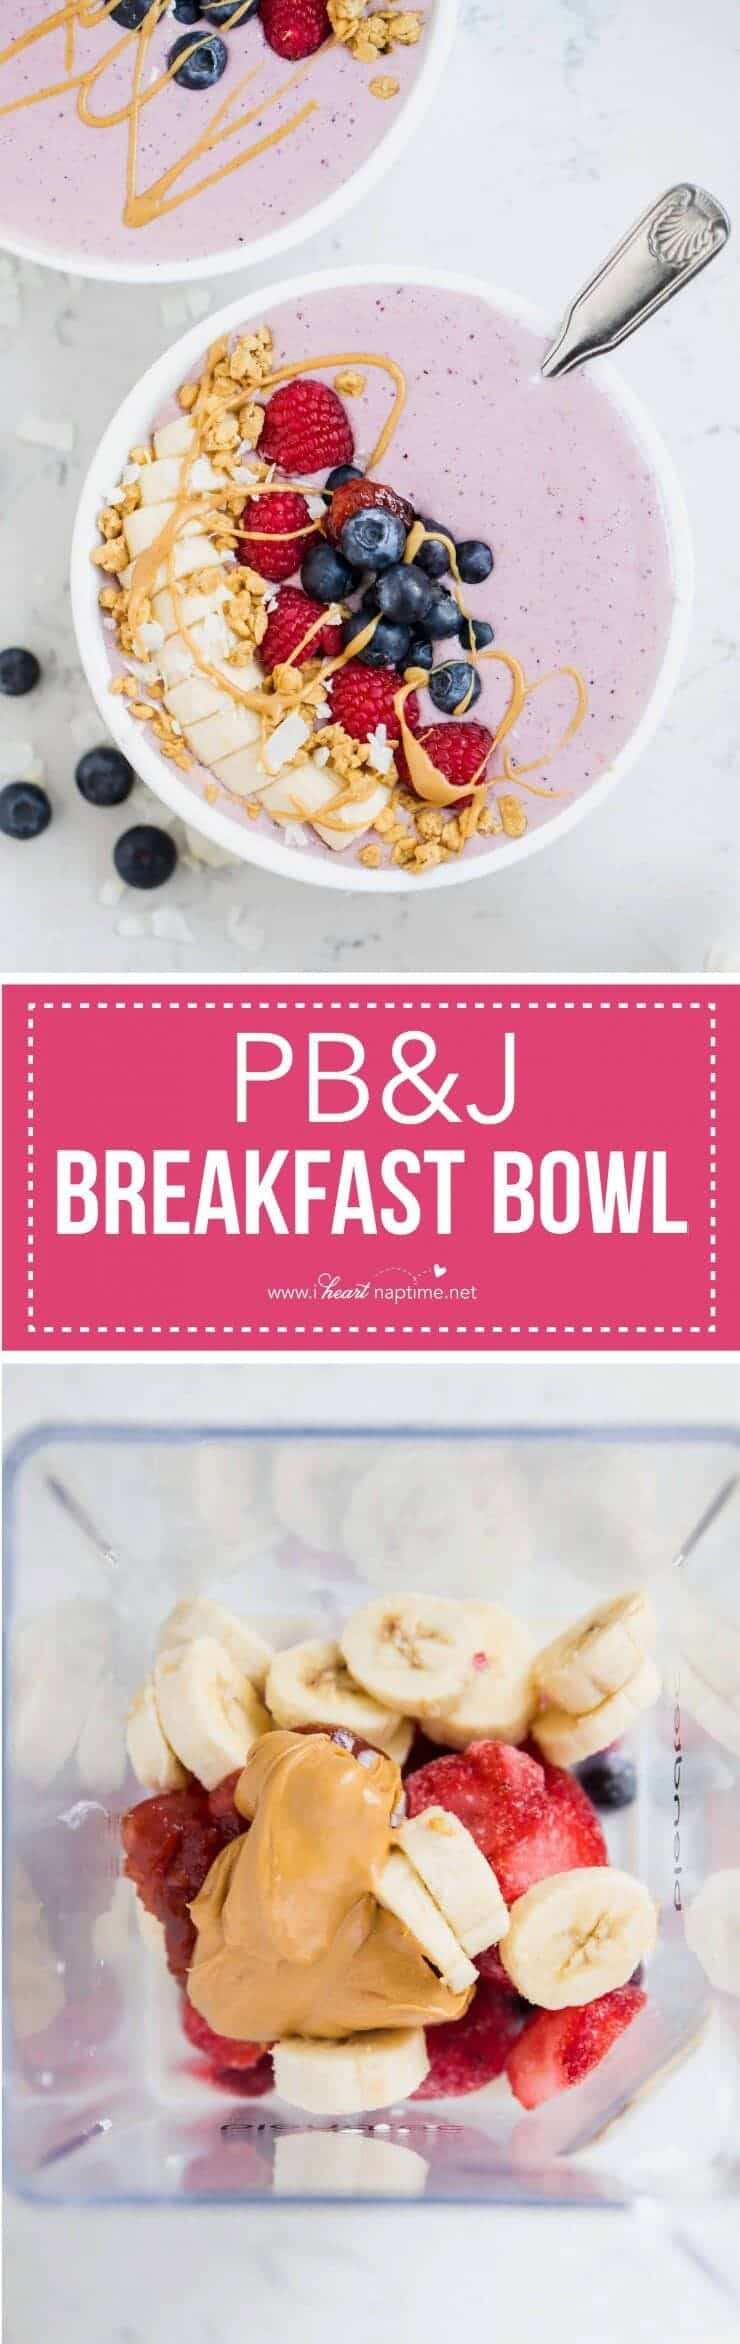 PB&J Breakfast Bowl -your family's favorite sandwich in a bowl! Simple, creamy and naturally sweet topped with all your most loved fruits and granola.